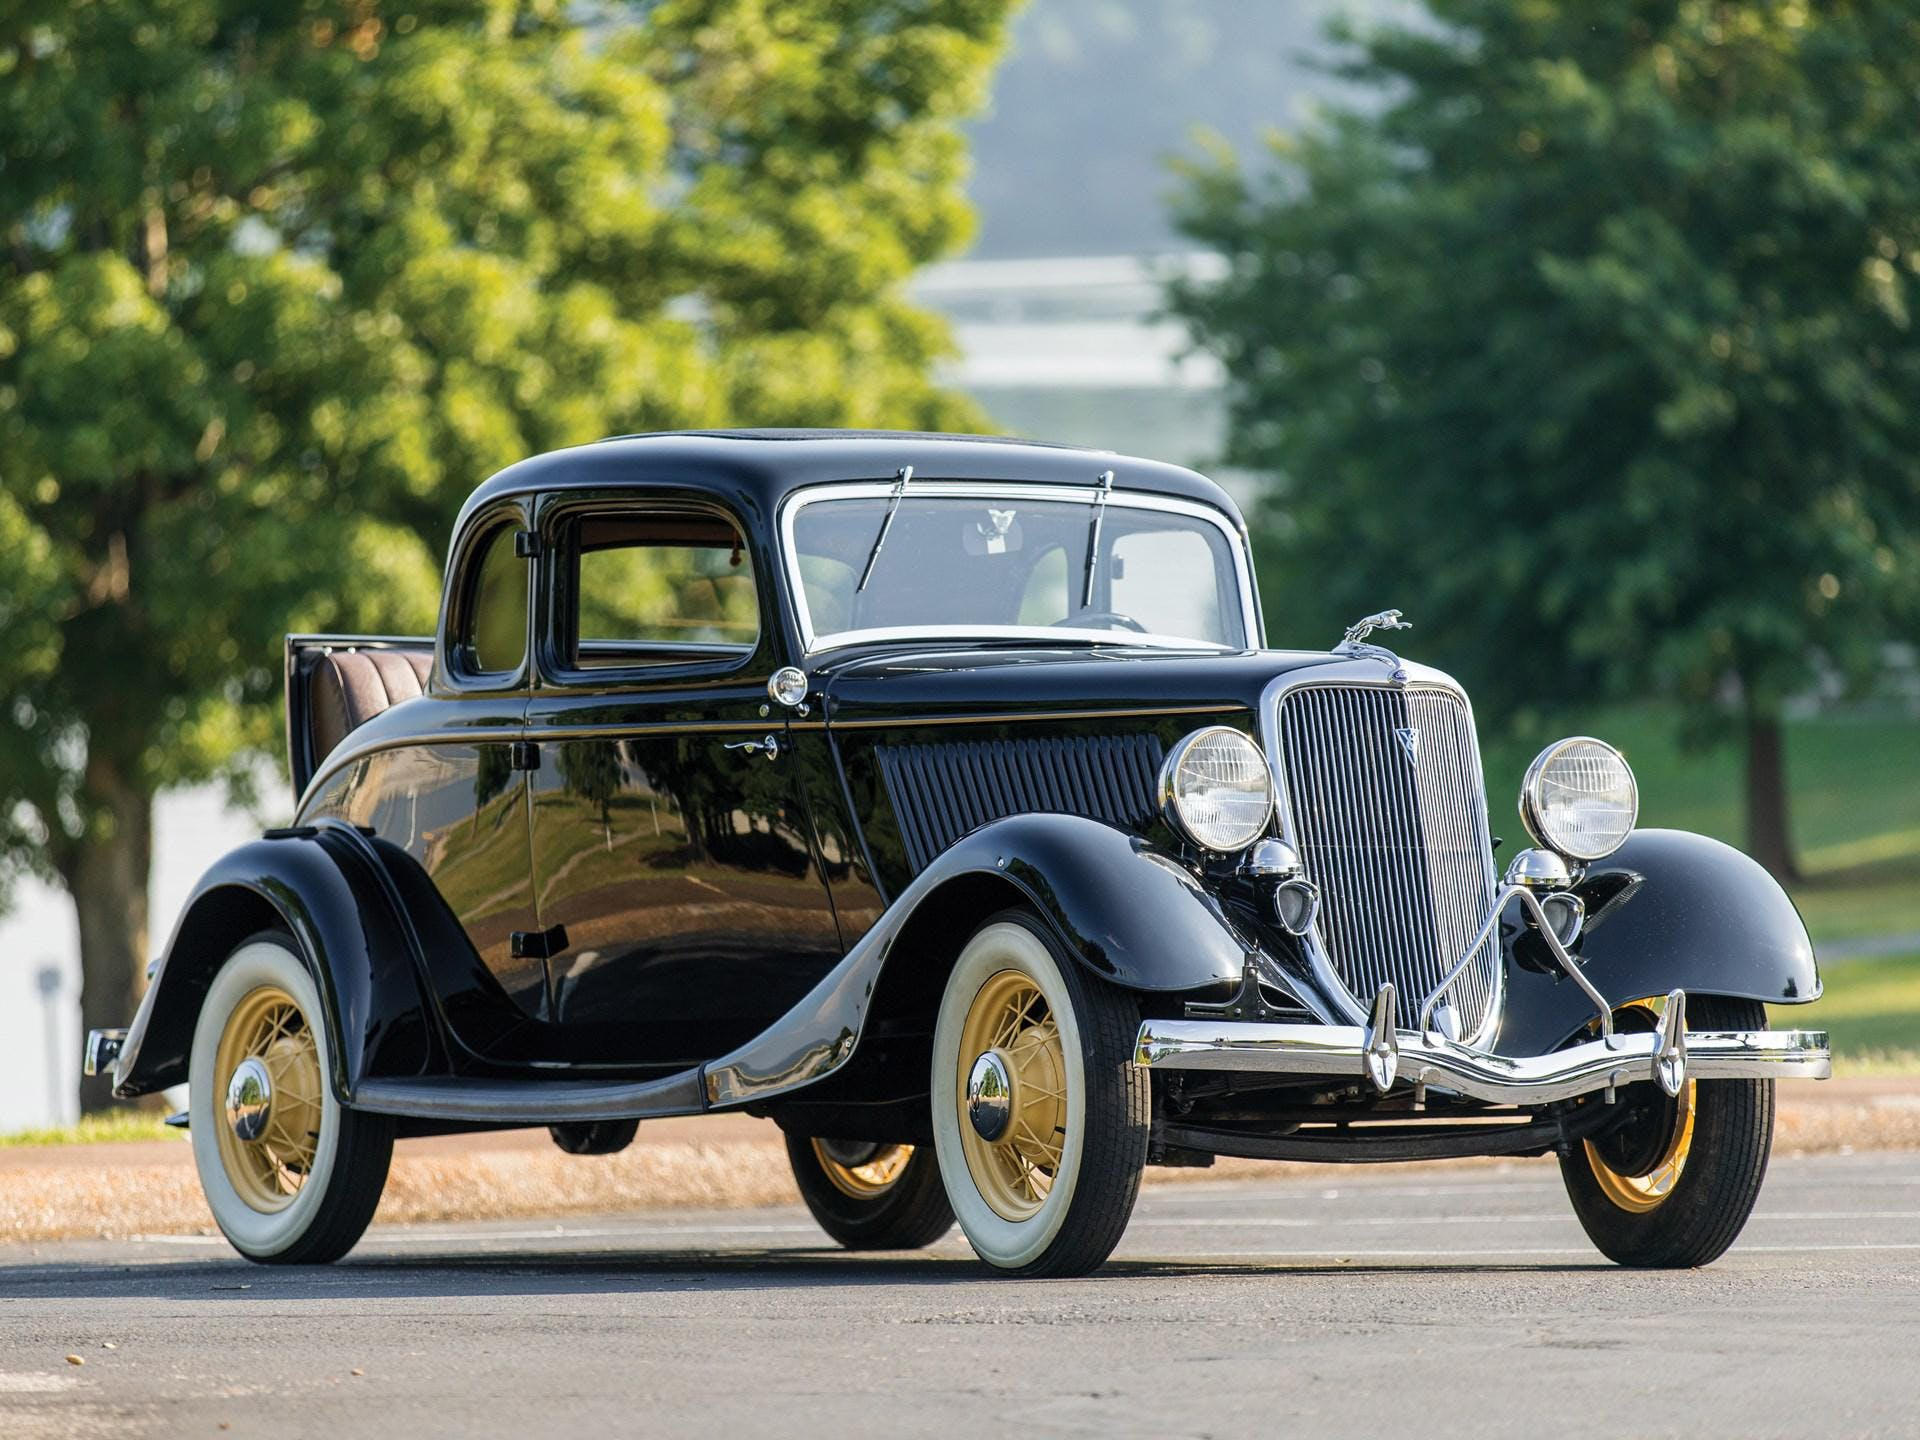 1934 Ford V-8 Deluxe Five-Window Coupe